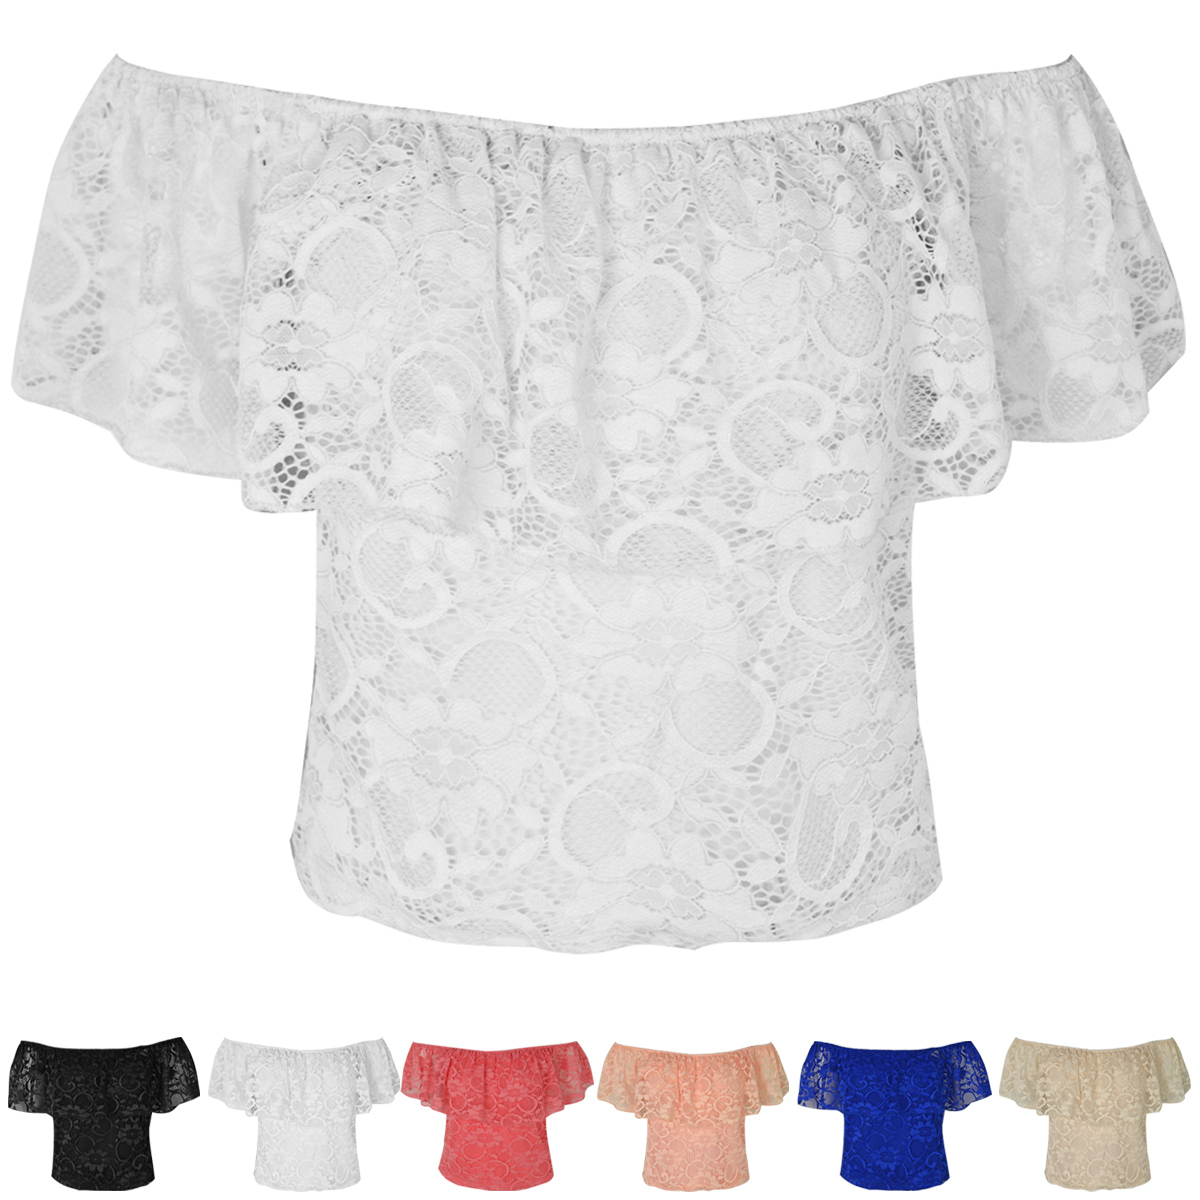 WOMENS-LADIES-LACE-CROCHET-OFF-SHOULDER-GYPSY-CROP-TOP-BOHO-FRILL-SUMMER-SIZE-UK